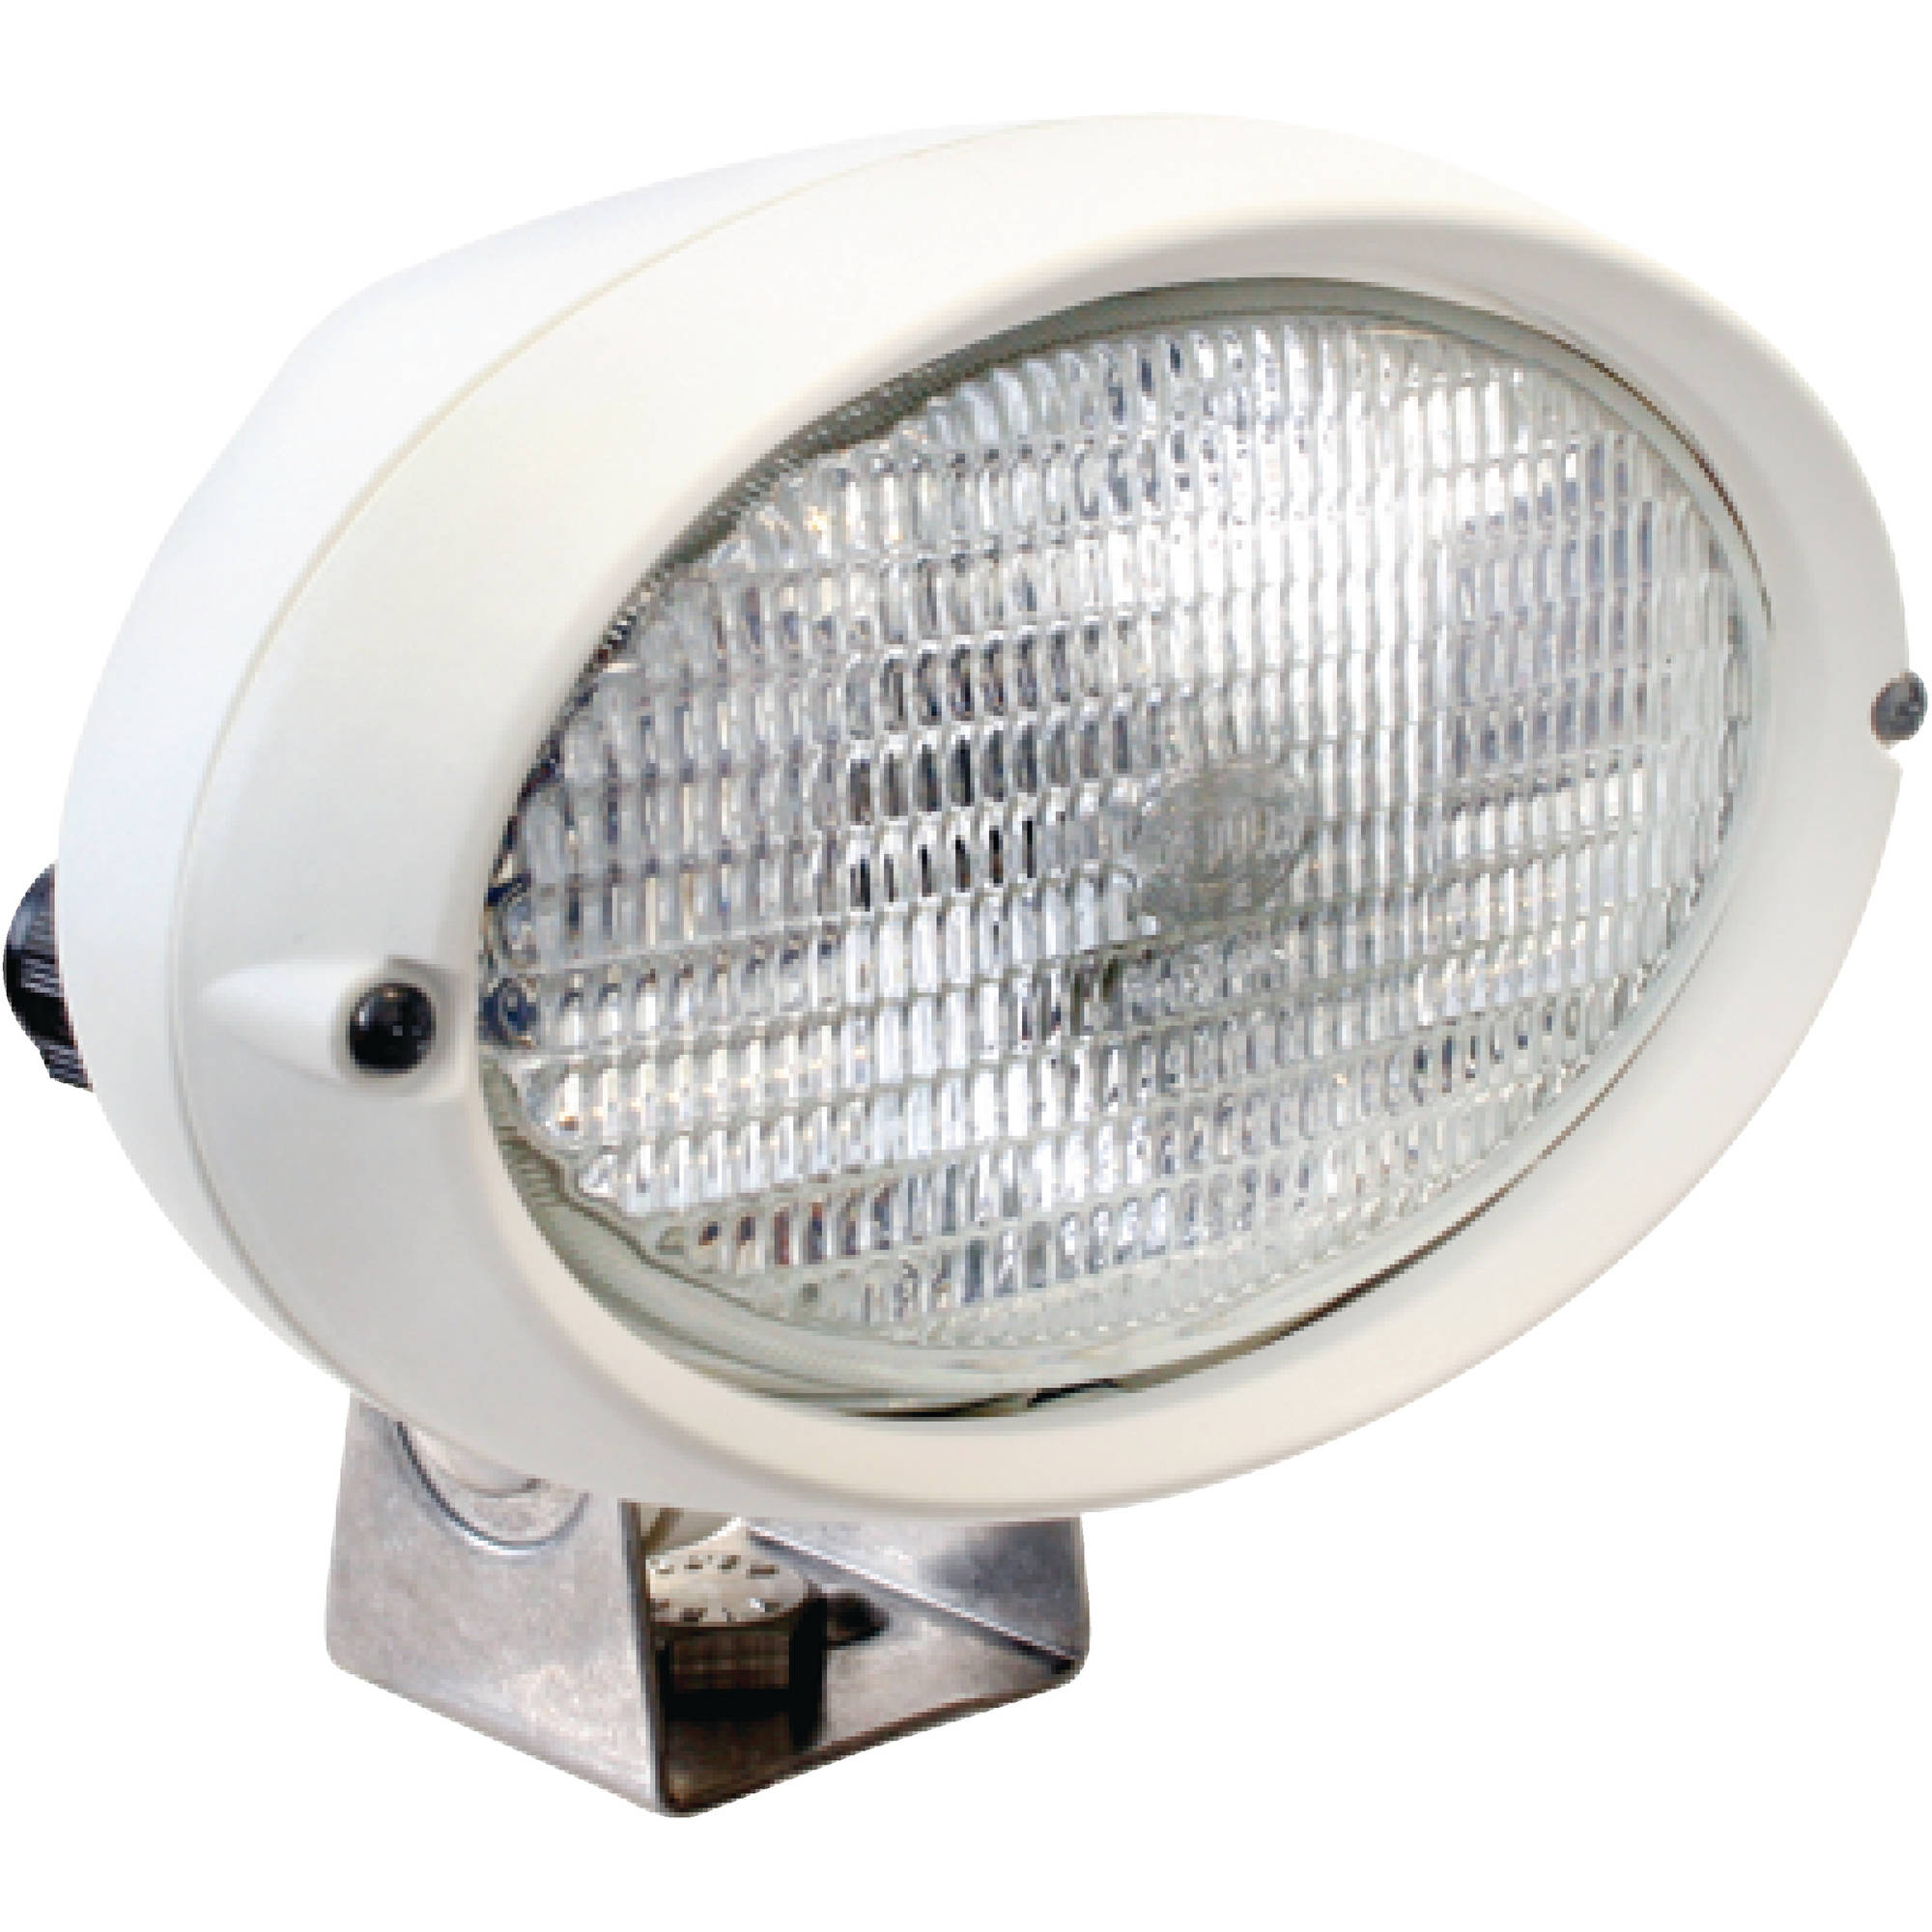 Hella 6361 Series 12V/55W Halogen Deck Floodlight, White Housing